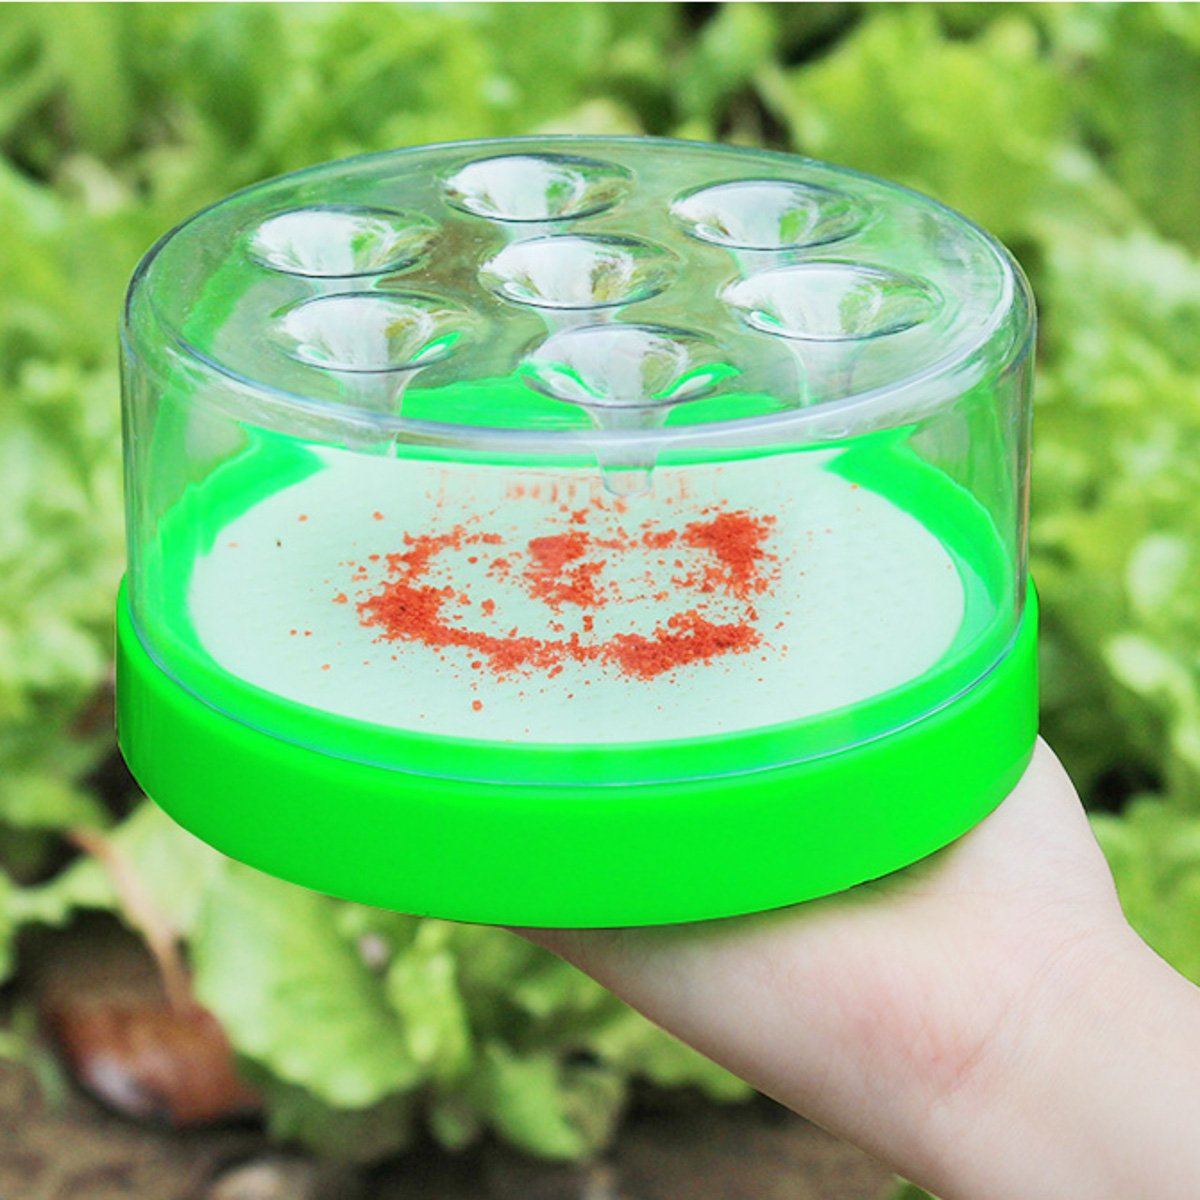 Non-Toxic Electric Fly Traps Reusable Plastic Eco Cockroach Catcher Pest Insect Killer Fly Trap Home Garden Pest Control Tools